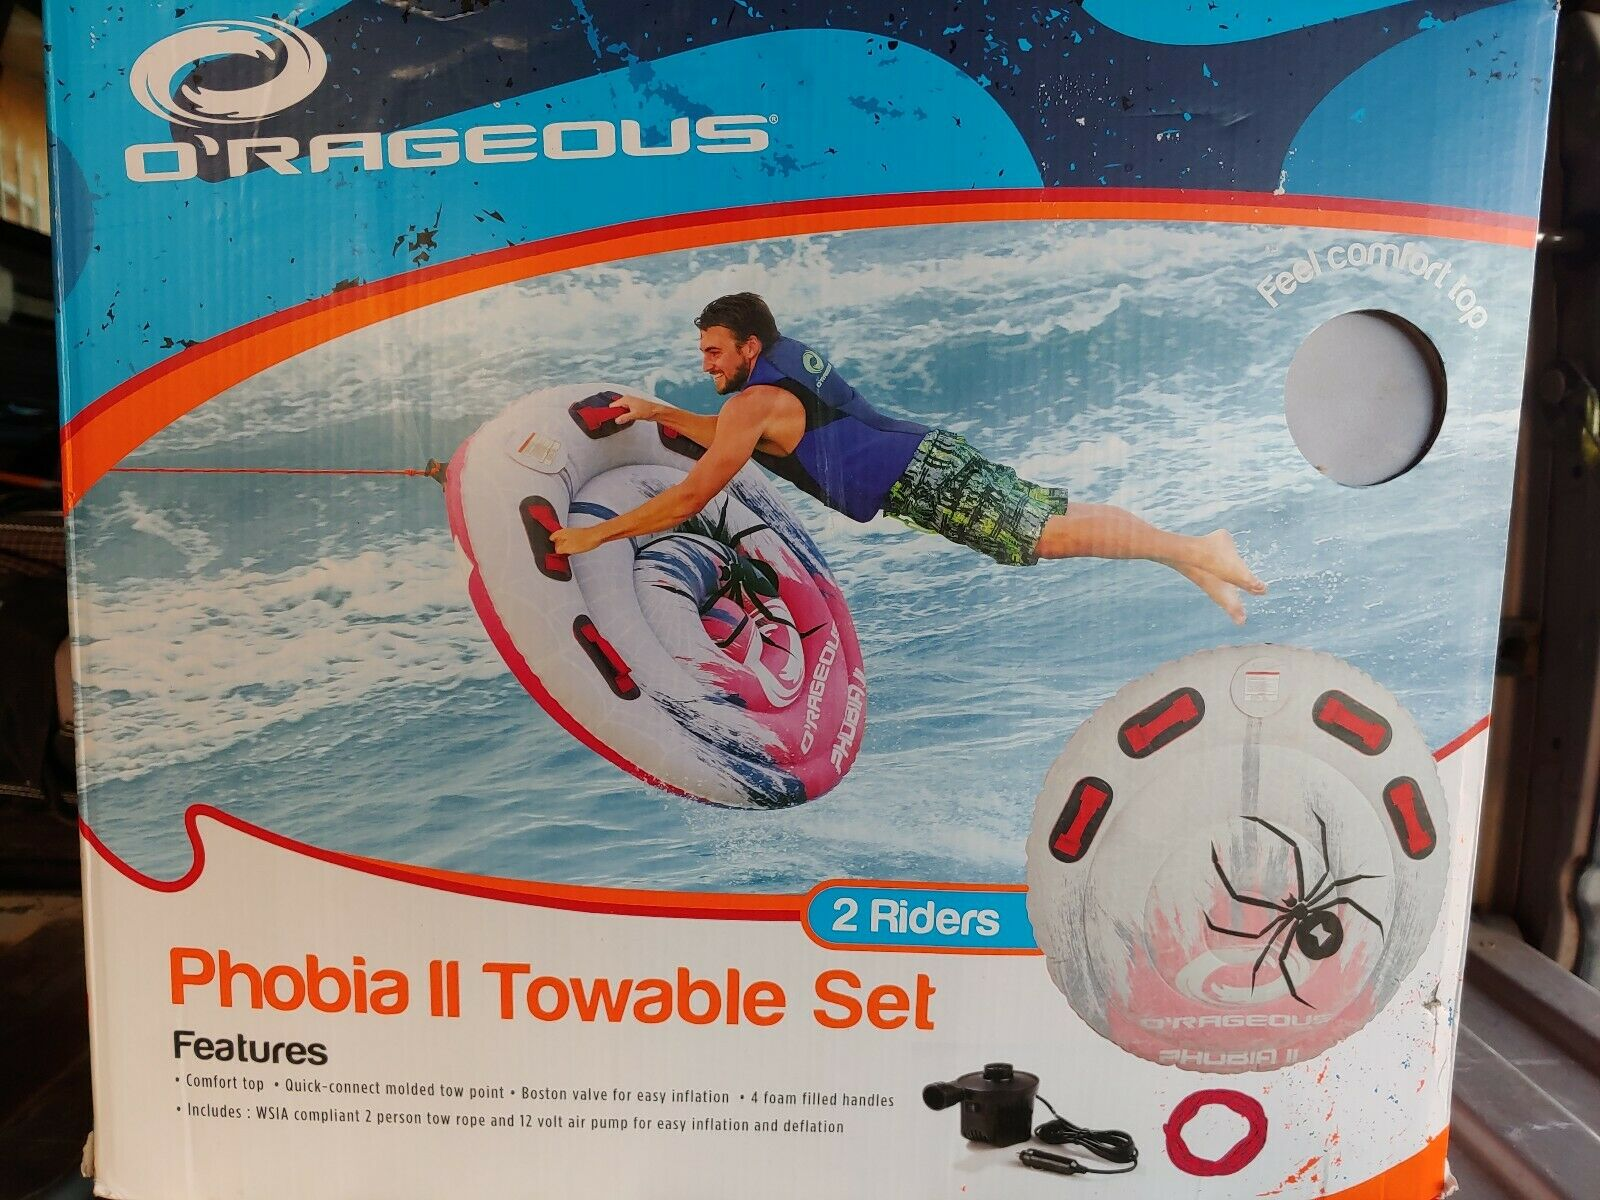 2 Person Towable Tube O'rageous Includes Tow Rope & 12v Pump Phobia II Set